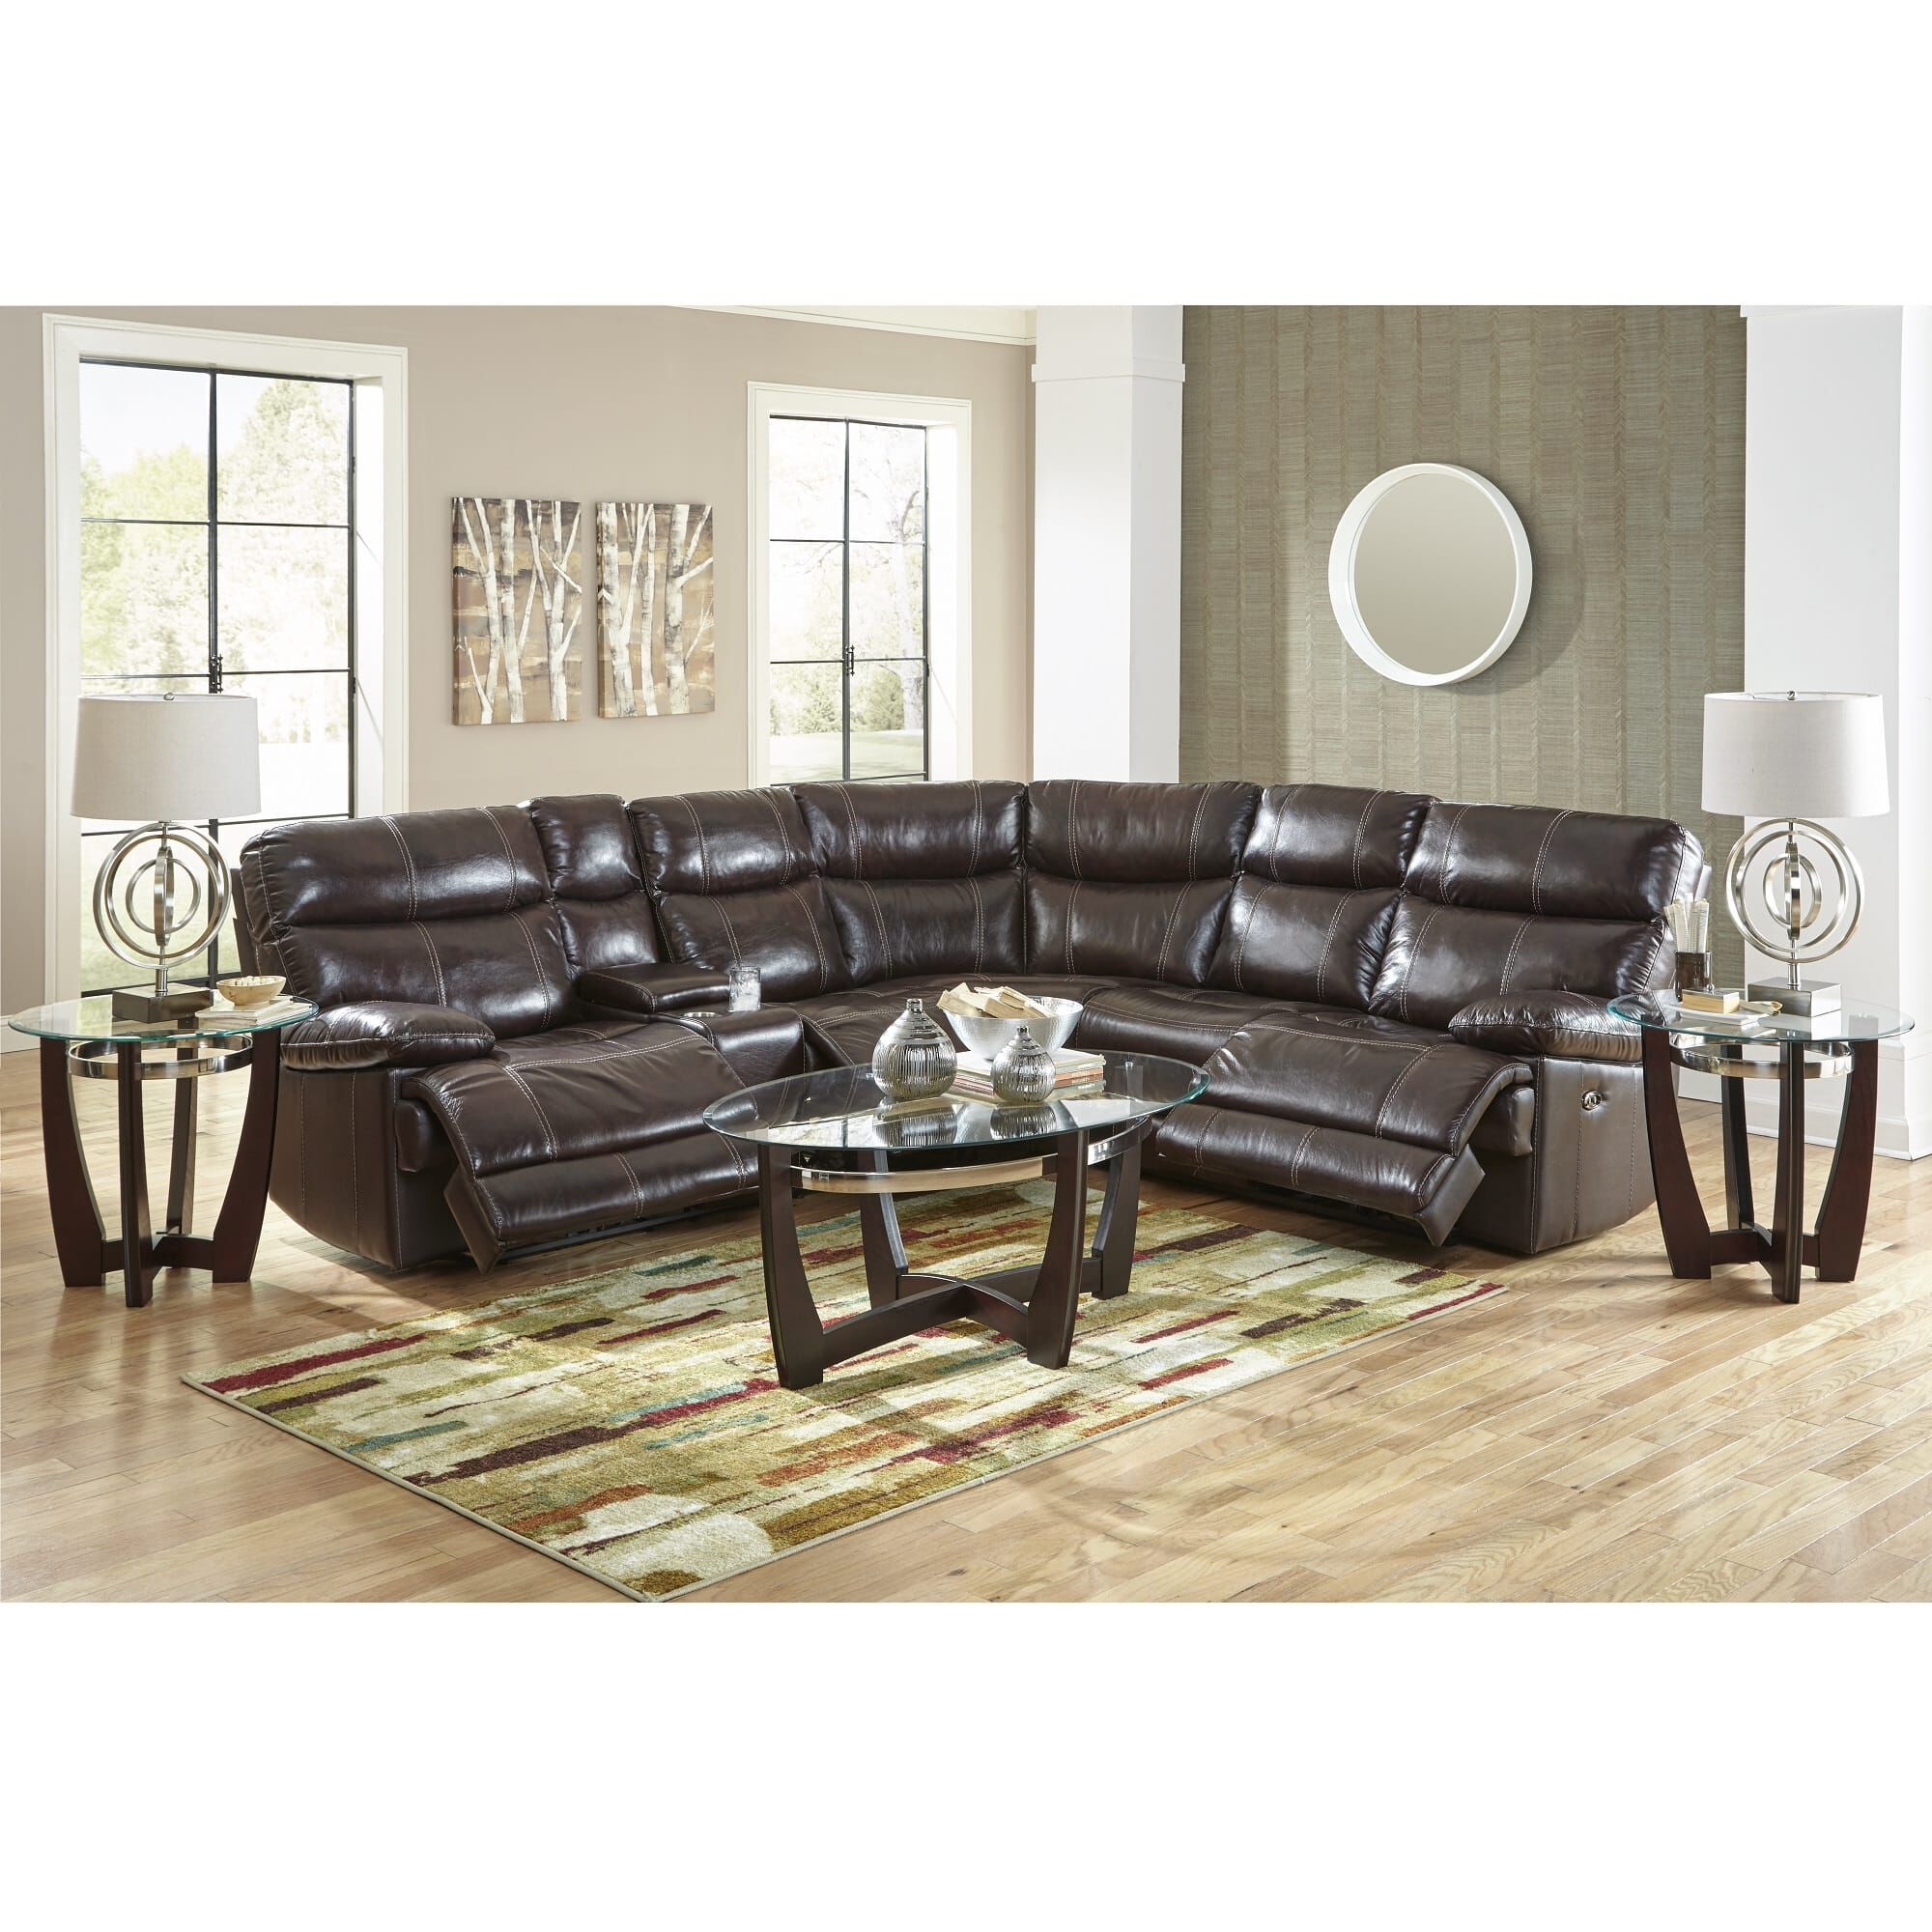 rent to own living room furniture aaron s rh aarons com Curved Sofas and Loveseats Sofa and Loveseat Sets